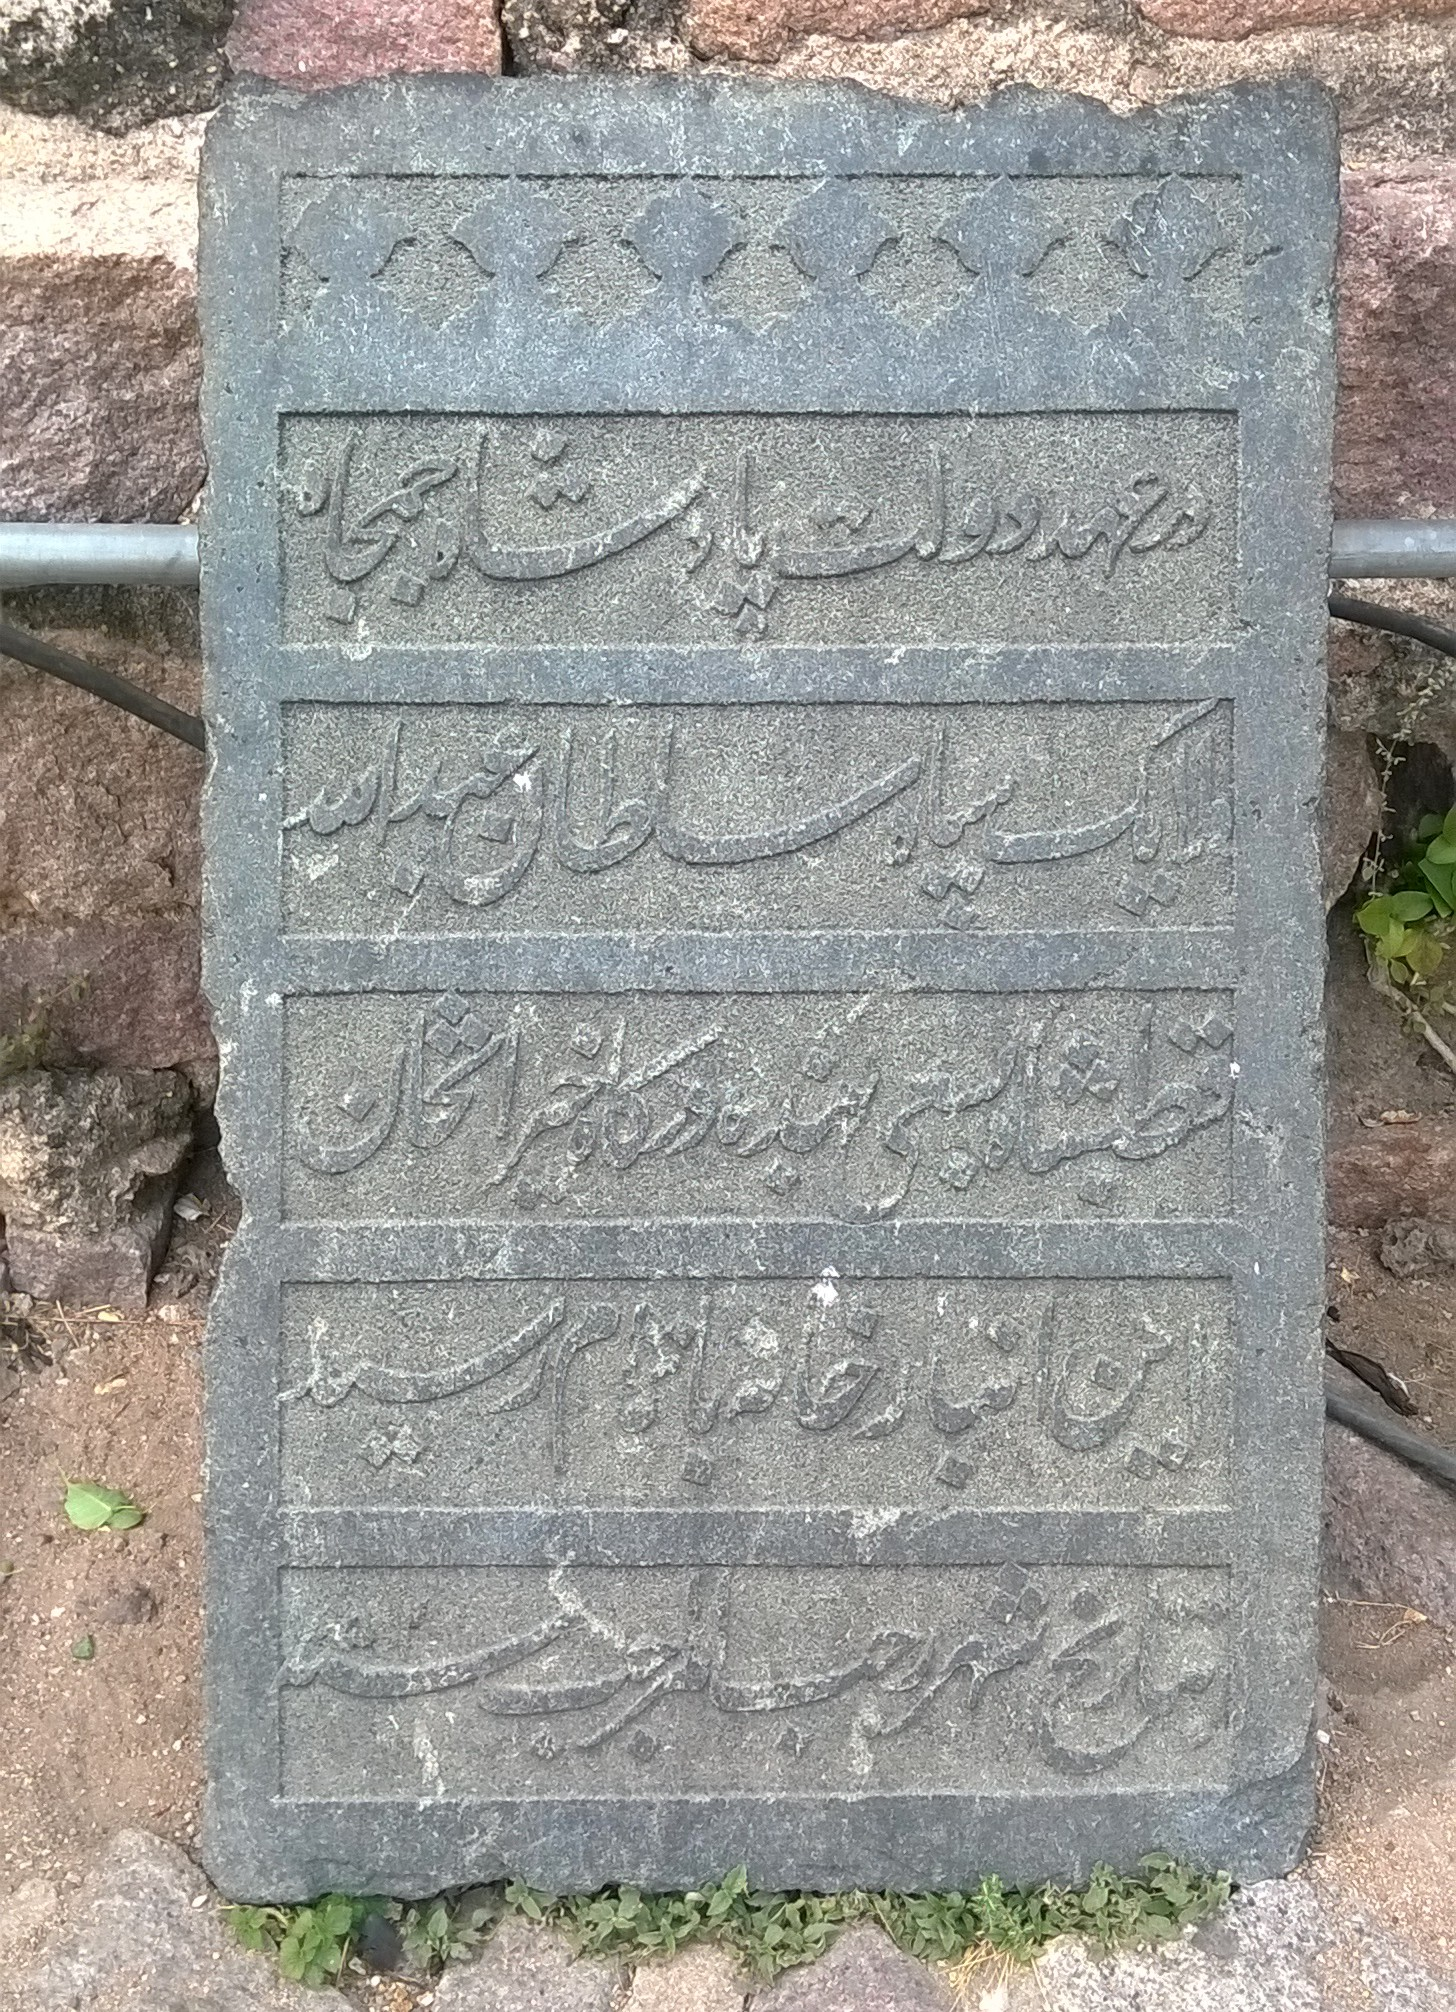 A Persian inscription